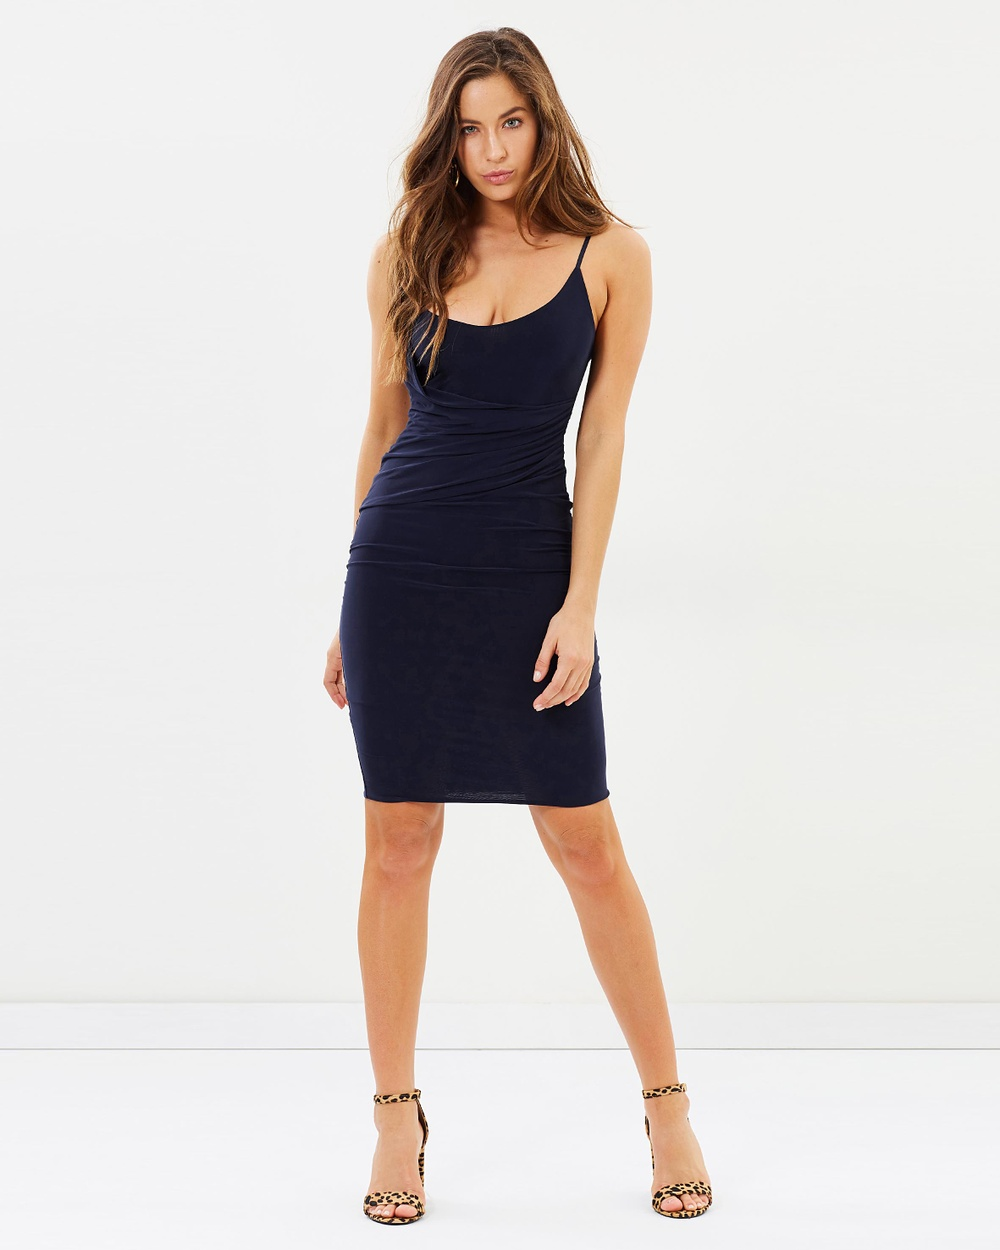 Missguided Slinky Strappy Wrap Midi Dress Bodycon Dresses Navy Slinky Strappy Wrap Midi Dress